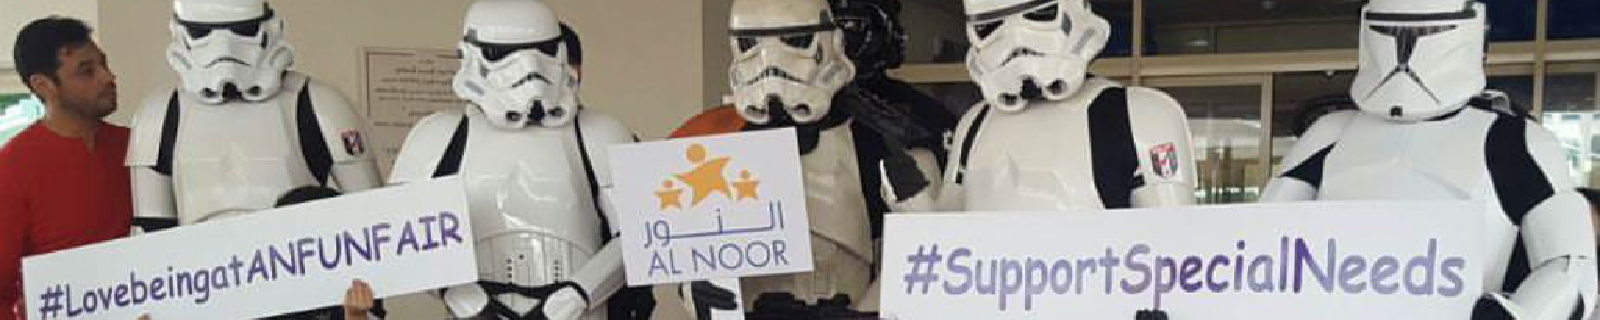 Al Noor Superhero Fun Run 2018